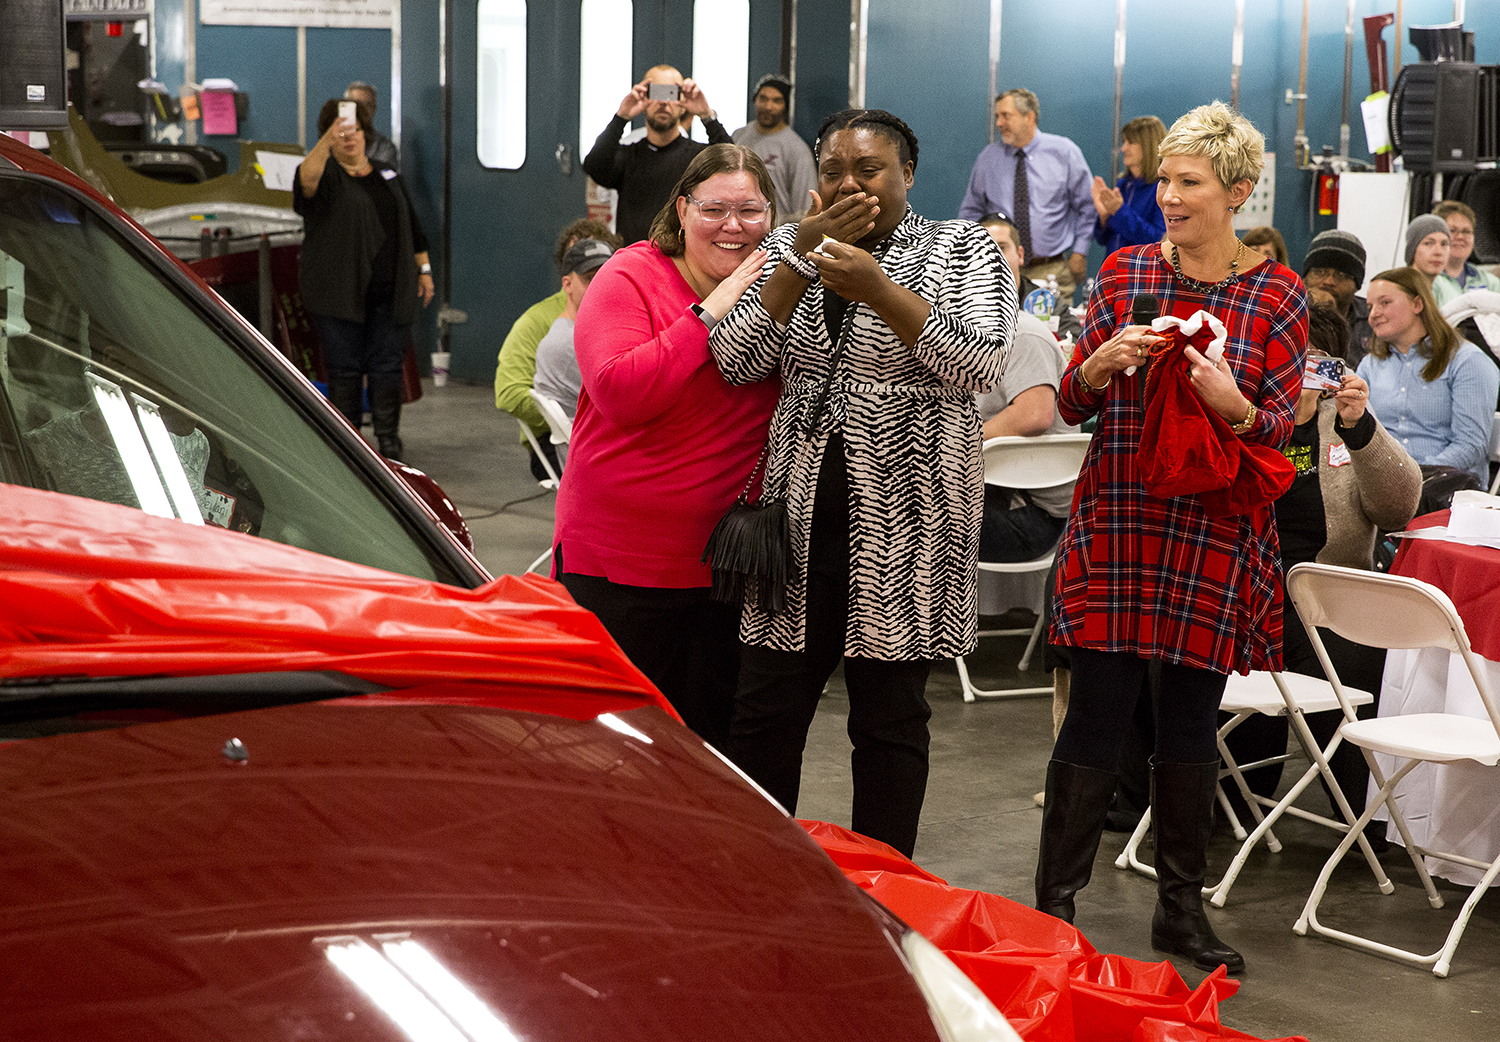 A new car for Alana Yates, center, is unwrapped at Zara's Collision Center Dec. 6 during the business's holiday car give-away luncheon event. With Yates is her friend, Dawn Scheller, left, and Julie Zara. Zara's benevolence program, which is in its 19th year, partners with numerous local businesses to acquire and restore used cars for deserving families. A car was also presented during the event to Jamie Smith and her family. Rich Saal/The State Journal-Register